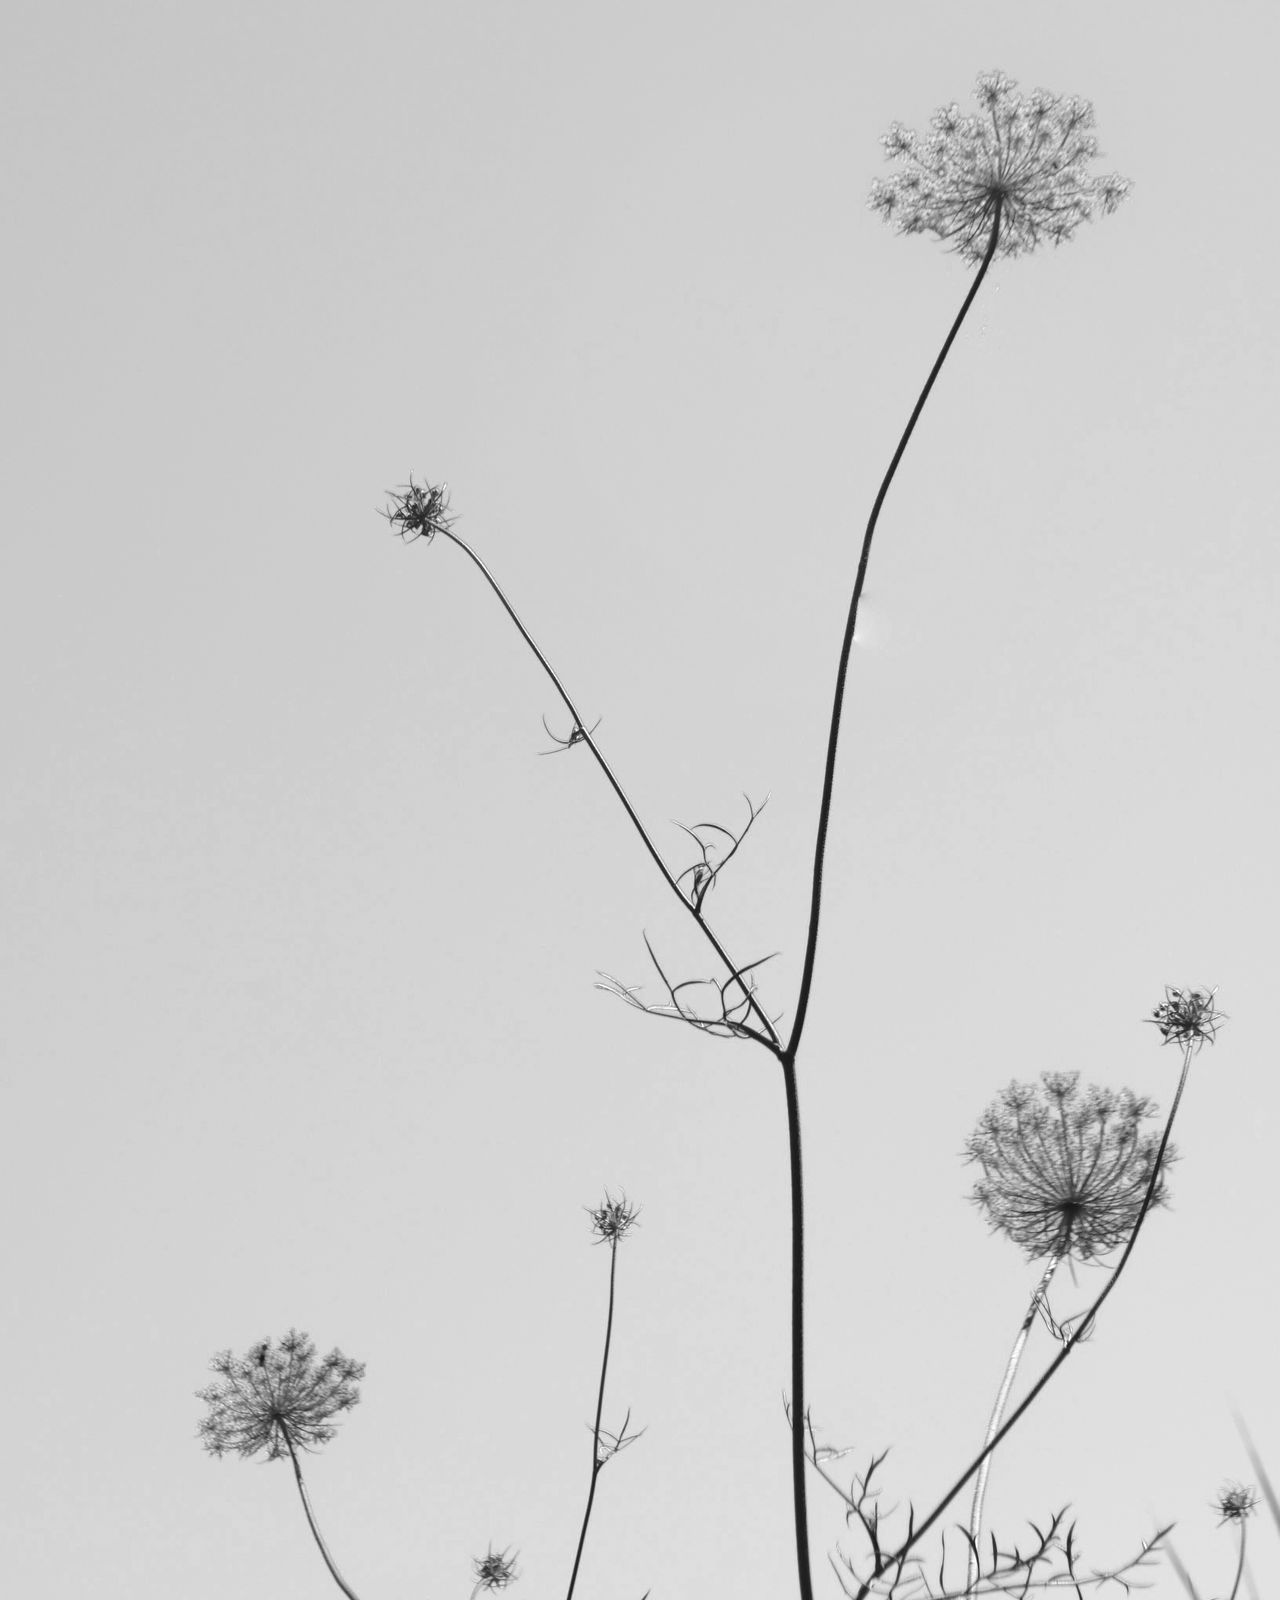 Flower Growth Nature Plant Tree No People Outdoors Beauty In Nature Day Clear Sky Fragility Flower Head Sky Freshness EyeEm Nature Lover Eye4photography  EyeEm Gallery EyeEm Best Shots Blackandwhite Blackandwhite Photography EyeEm Bnw